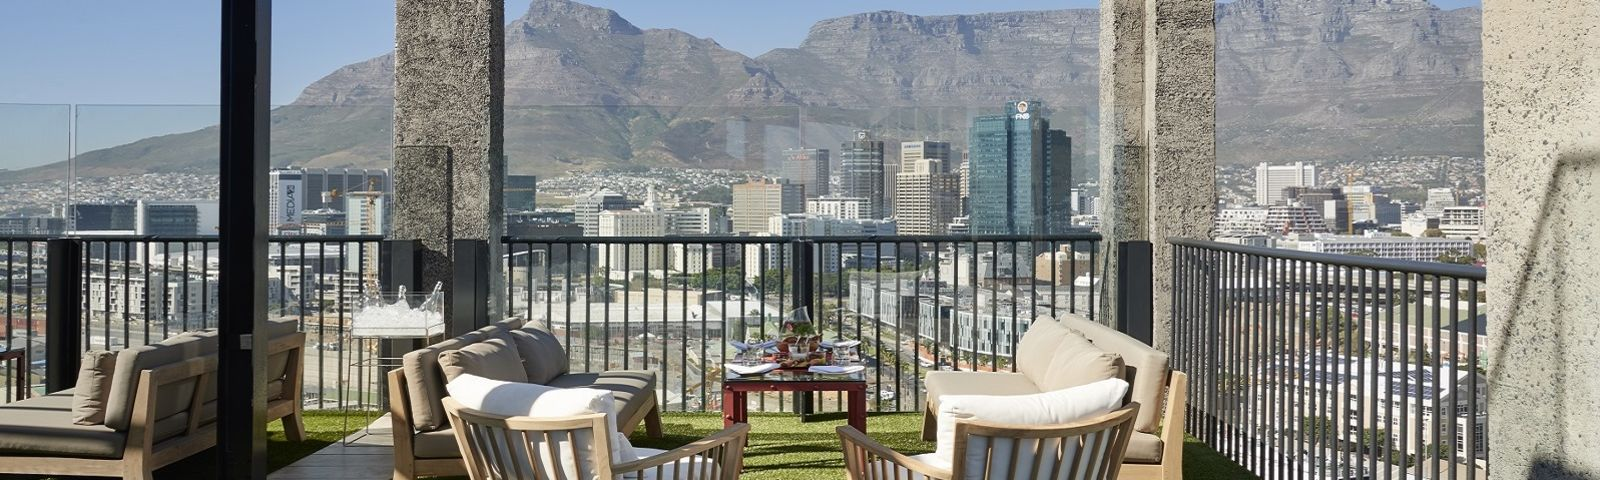 Discover our Cape Town Restaurant Recommendations